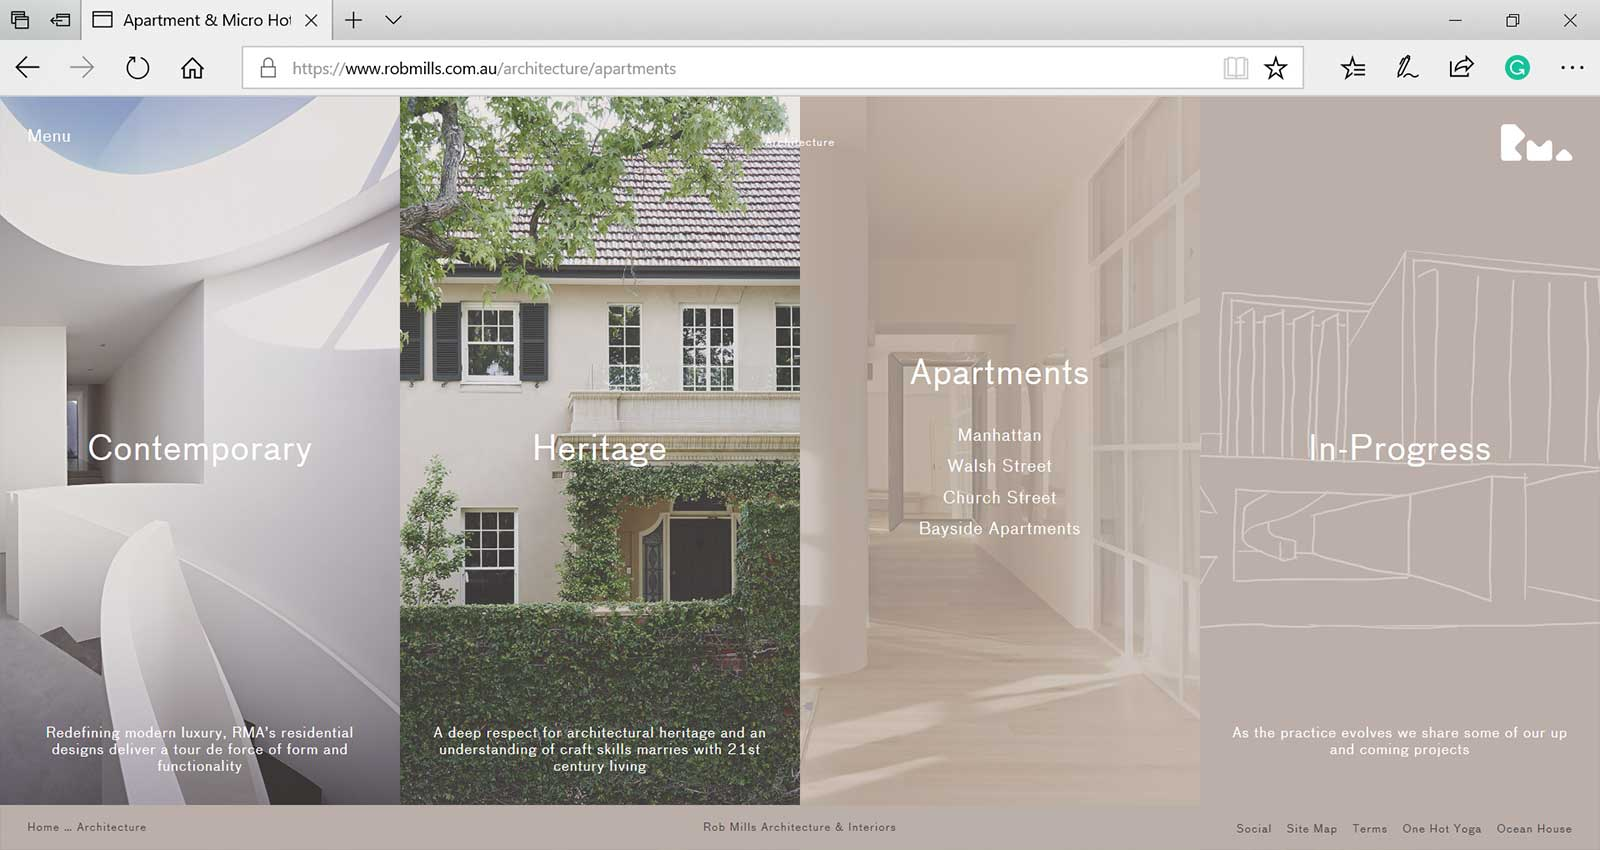 Top 15 Architecture Studio Websites of 2017 - Rob Mills Architects